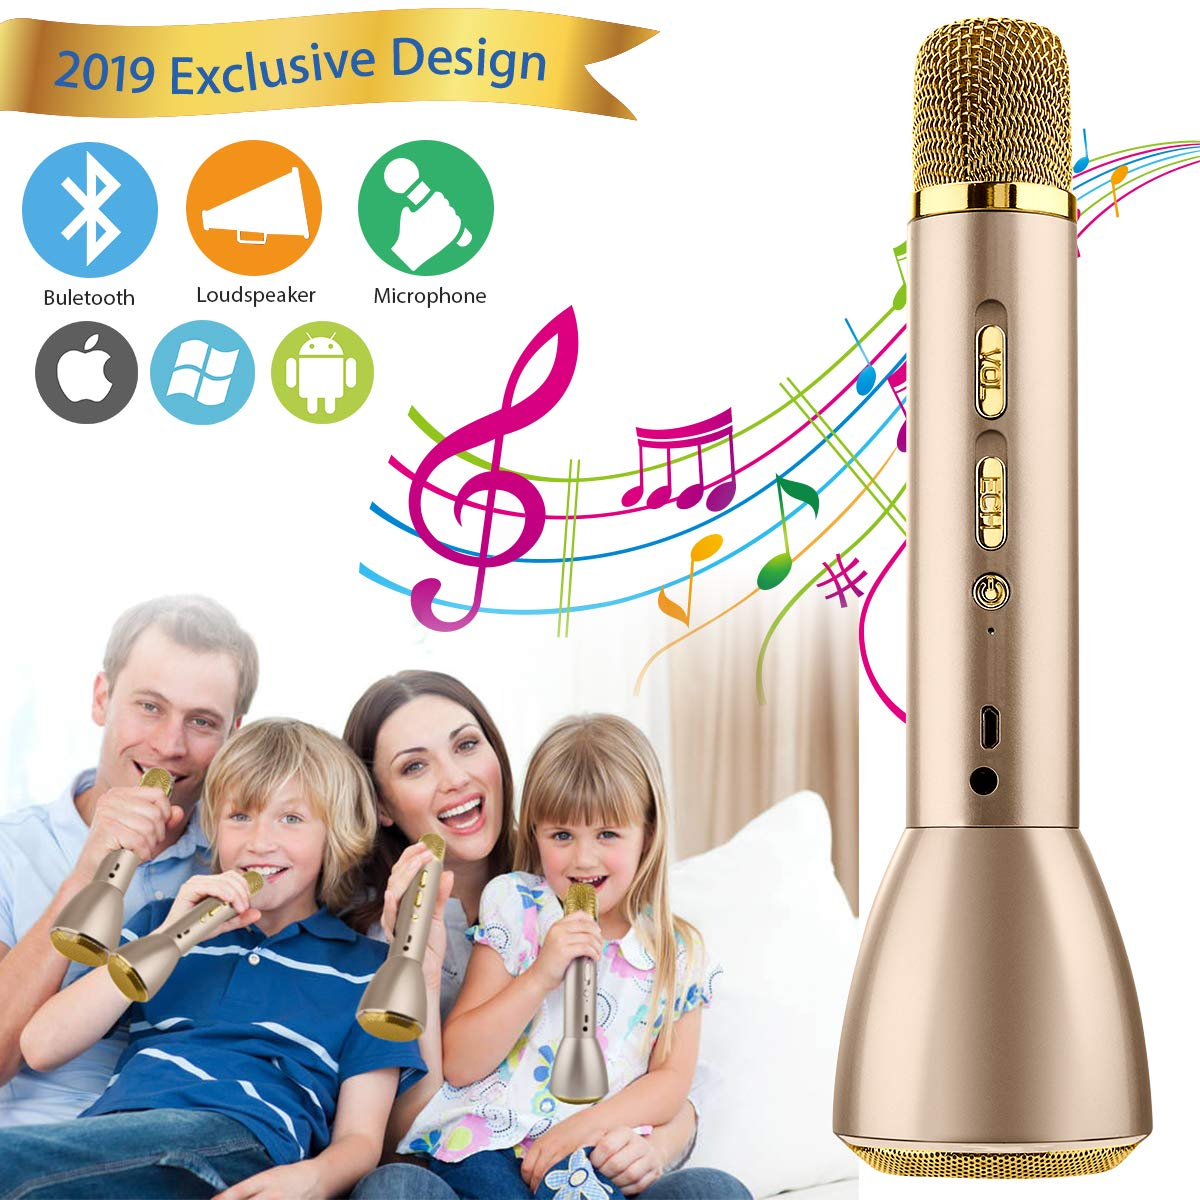 Wireless Karaoke Microphone for Kids, Kids Microphone Bluetooth Child Echo Mic Portable Karaoke Machine Cordless with Speaker for Boys Girls Adult Party Music Singing Android iOS Phones(Gold) by Adhope